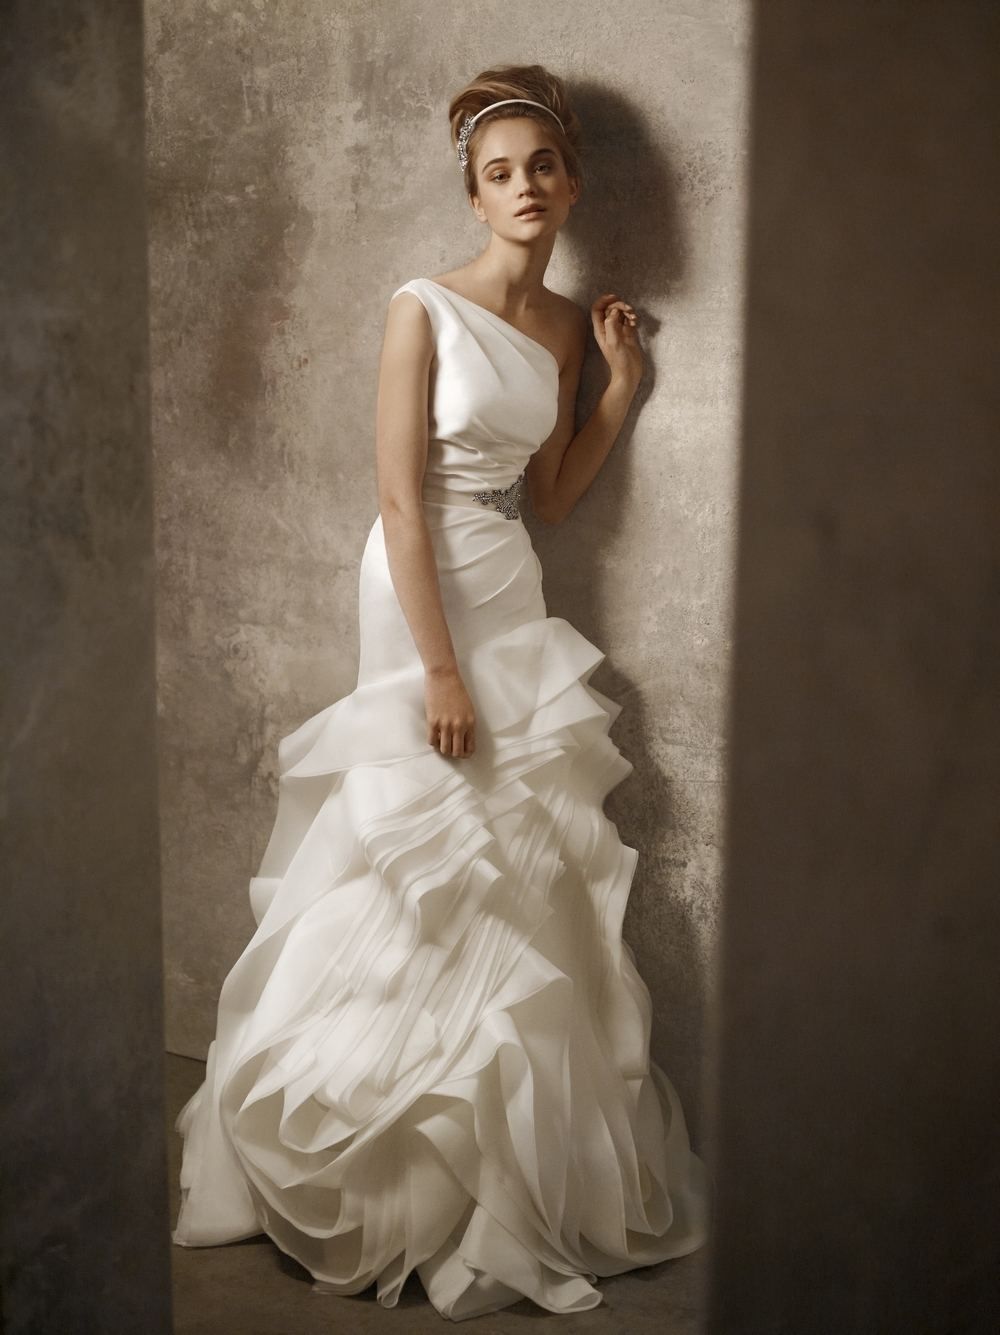 2011-wedding-dresses-vera-wang-white-vw351010-one-shoulder-ivory-gown-ruffled-textured-skirt.full